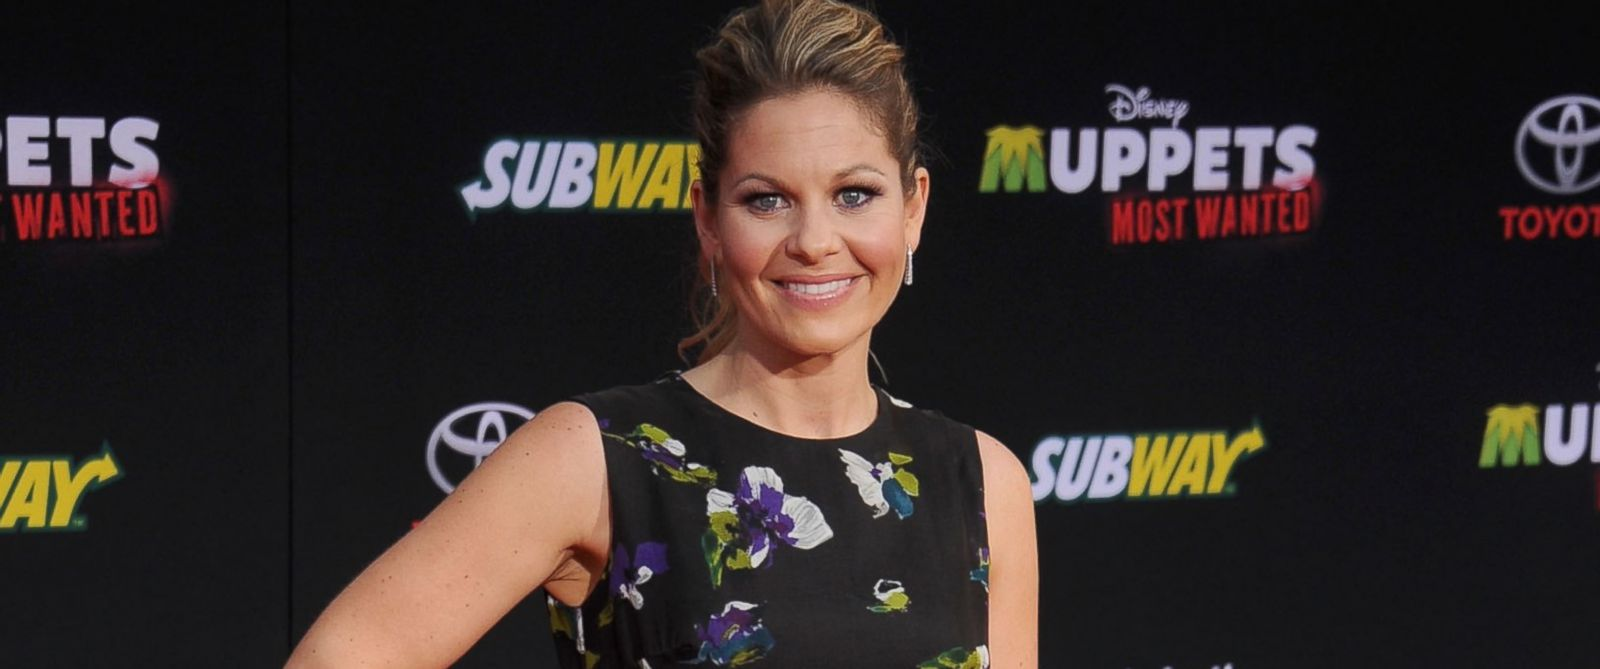 """PHOTO: Actress Candace Cameron Bure arrives at the Los Angeles premiere of """"Muppets Most Wanted"""" at the El Capitan Theatre, March 11, 2014 in Hollywood, Calif."""